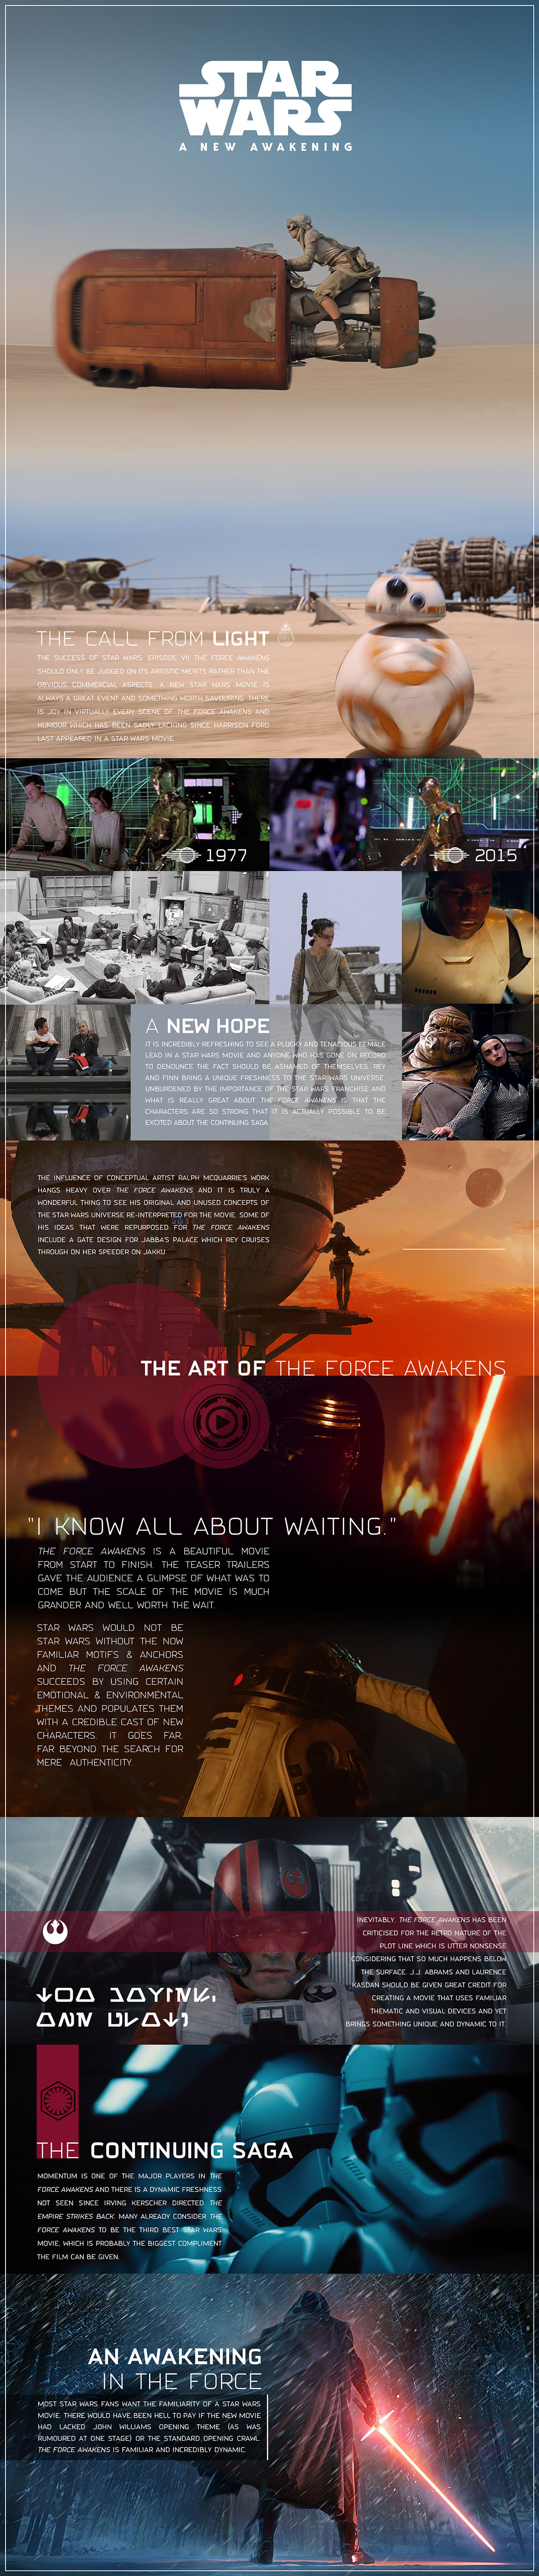 Star Wars The Force Awakens Infographic Blog Essay Defending the Retro Nature of the New Star Wars Movie Info Graphic Kylo Ren Rey Finn Luke Skywalker Han Solo JJ Abrams BB-8 by Kristian Goddard